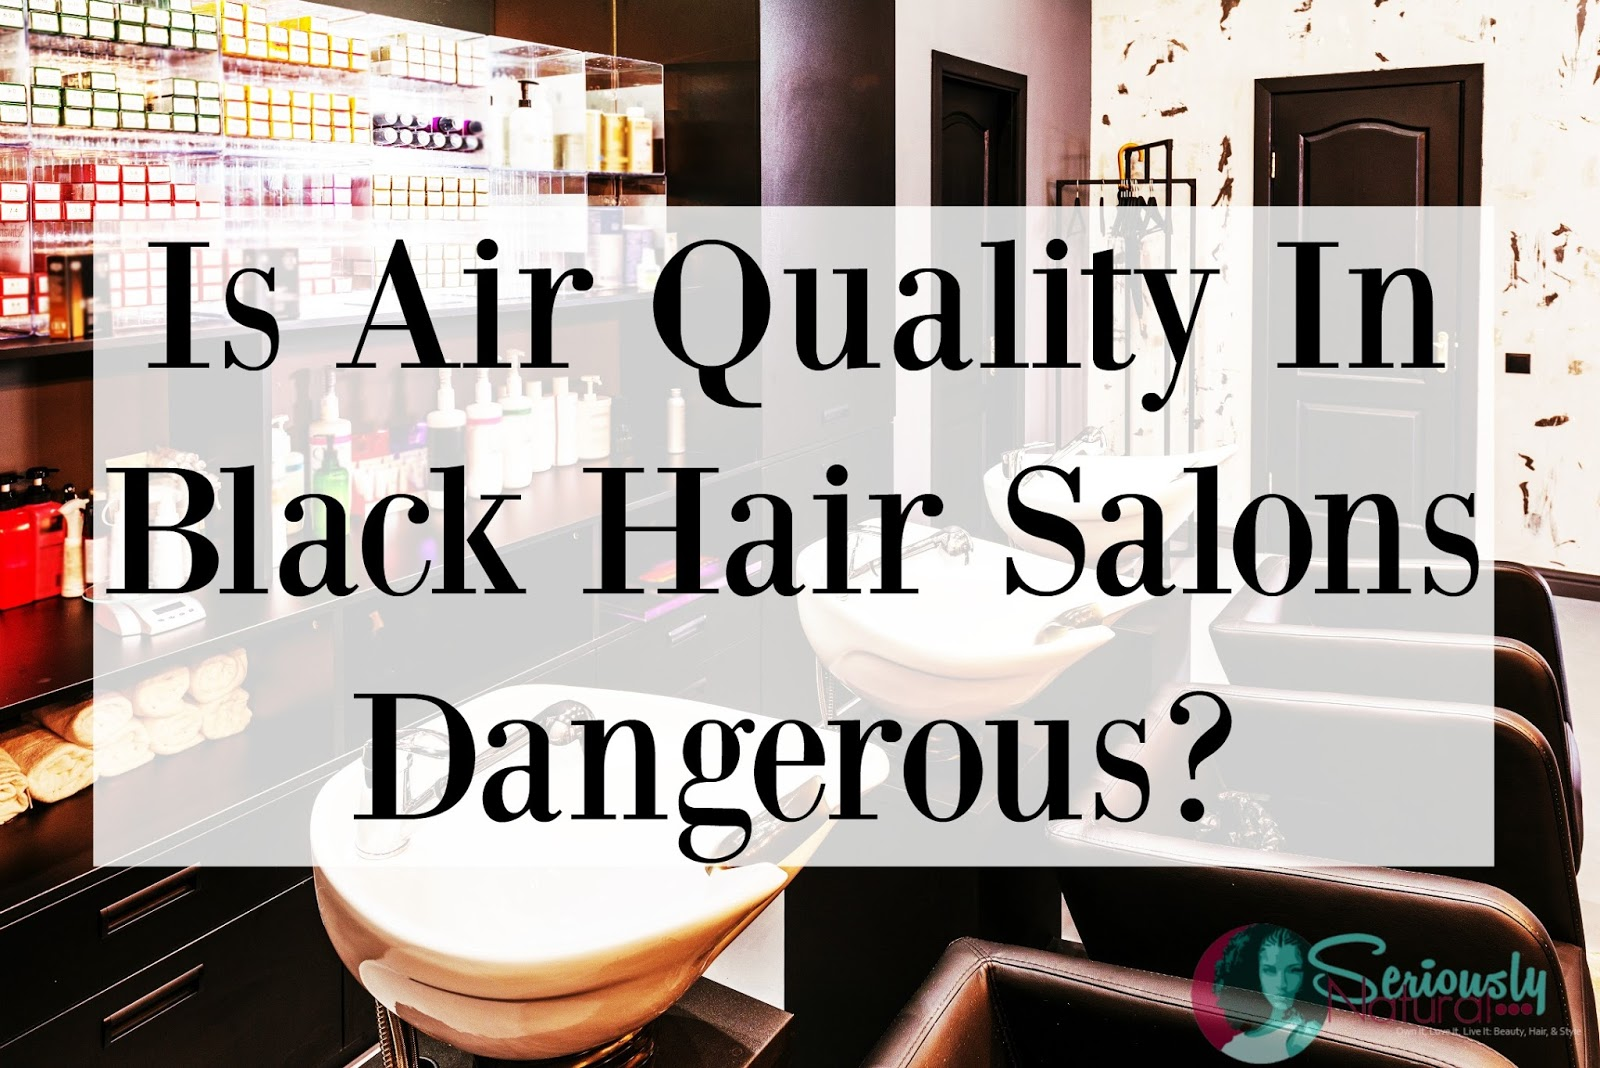 Is Air Quality In Black Hair Salons Dangerous?